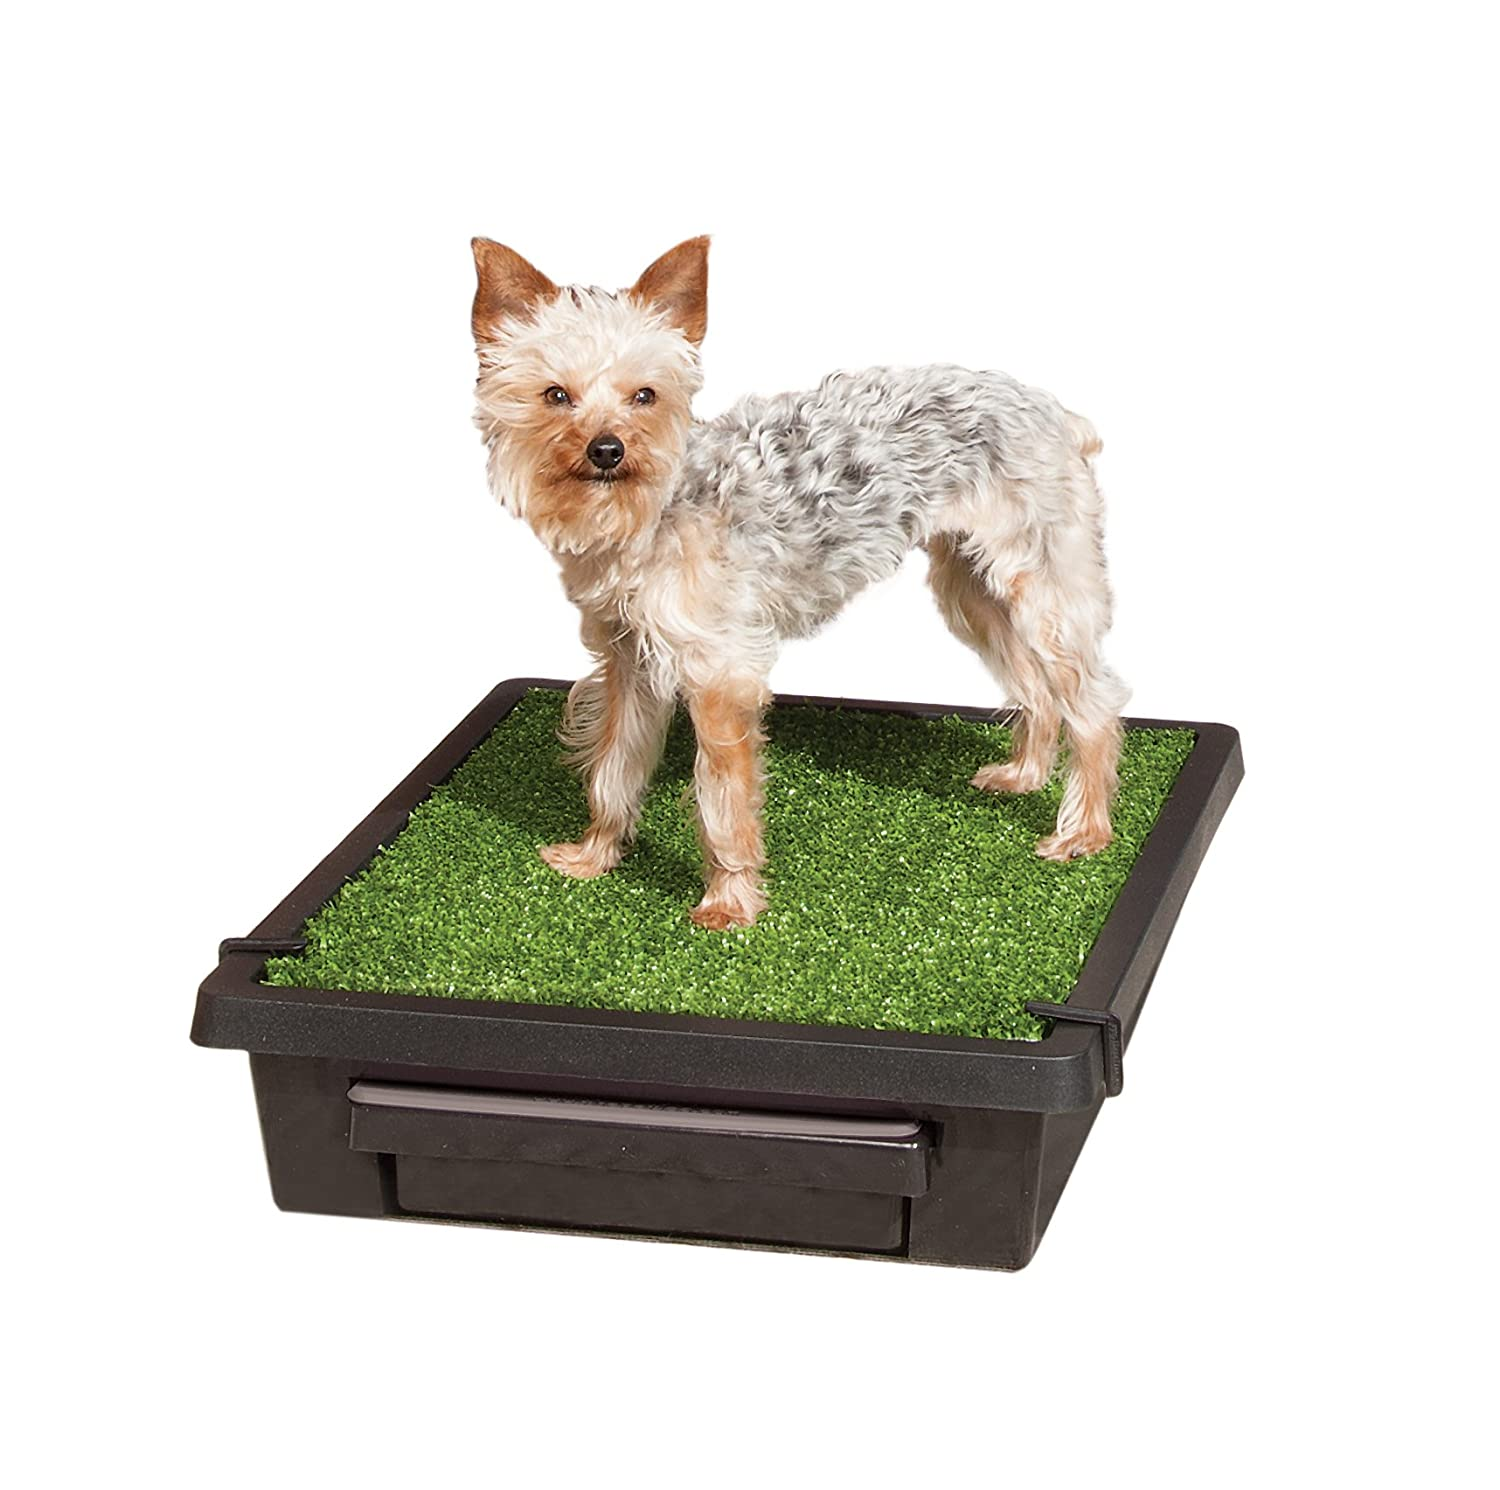 PetSafe Pet Loo Portable Indoor/Outdoor Dog Potty, Alternative to Puppy Pads, Small Waste Management PWM00-14497